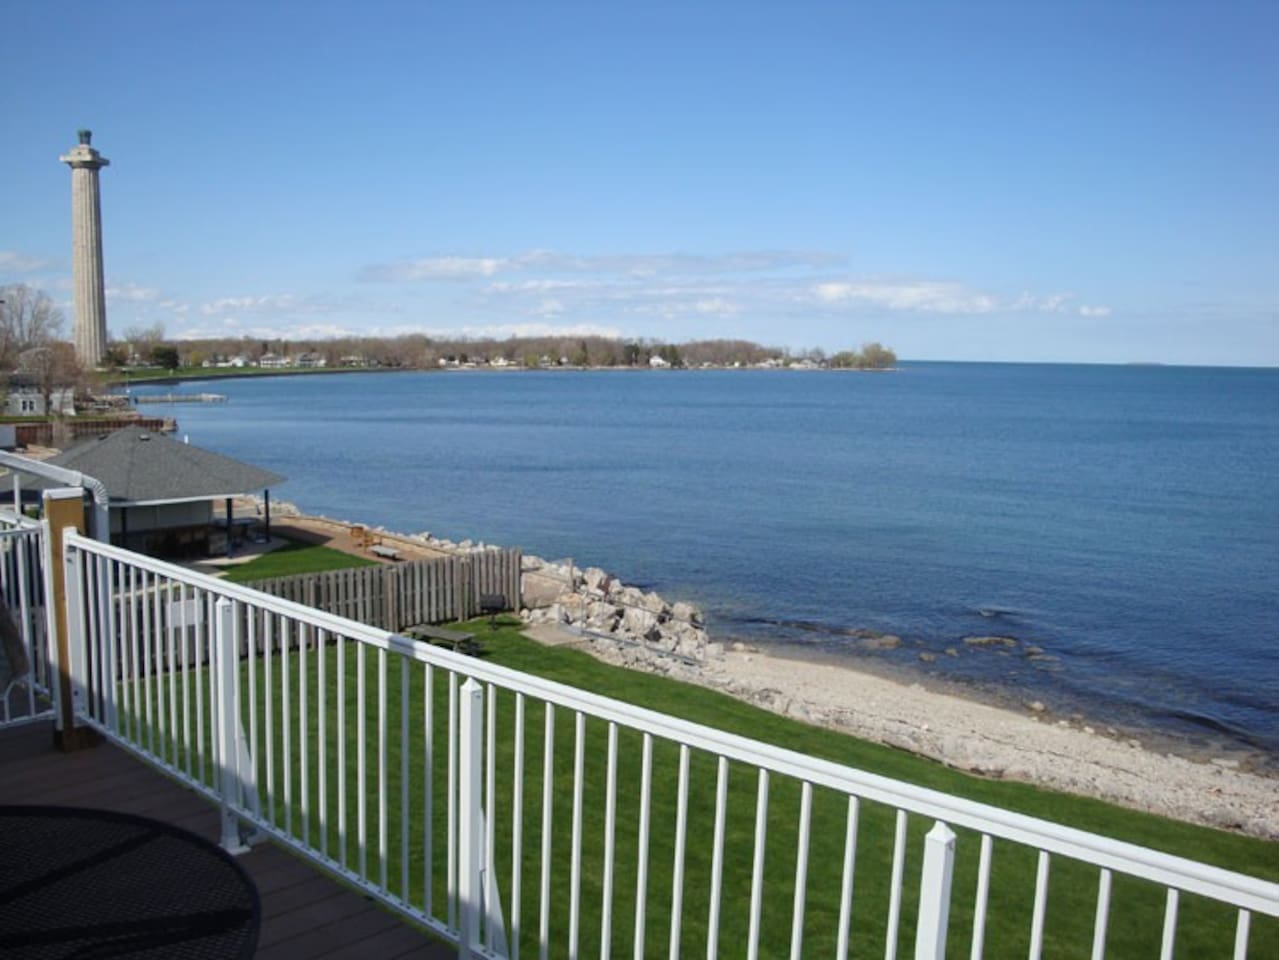 The view from the deck includes the impressive monument to the American victory in the Battle of Lake Erie.